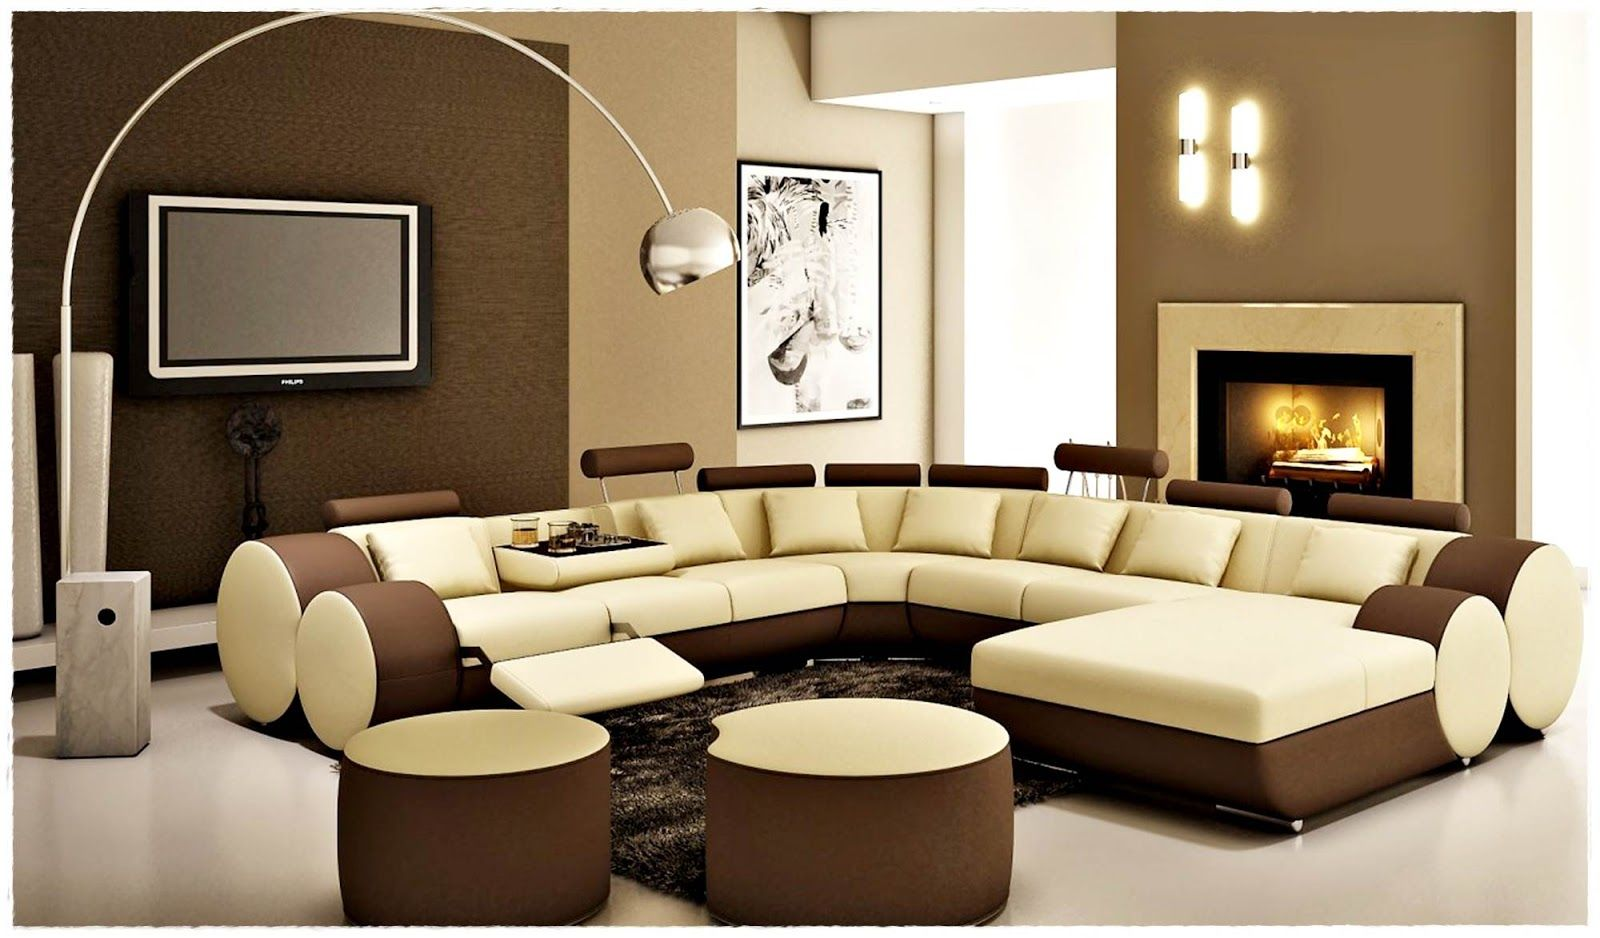 Wohnzimmer Farben Home Design Wohnzimmer Farben Shui Feng Wandfarben Sectional Living Room Layout Living Room Sets Furniture Family Room Furniture Layout